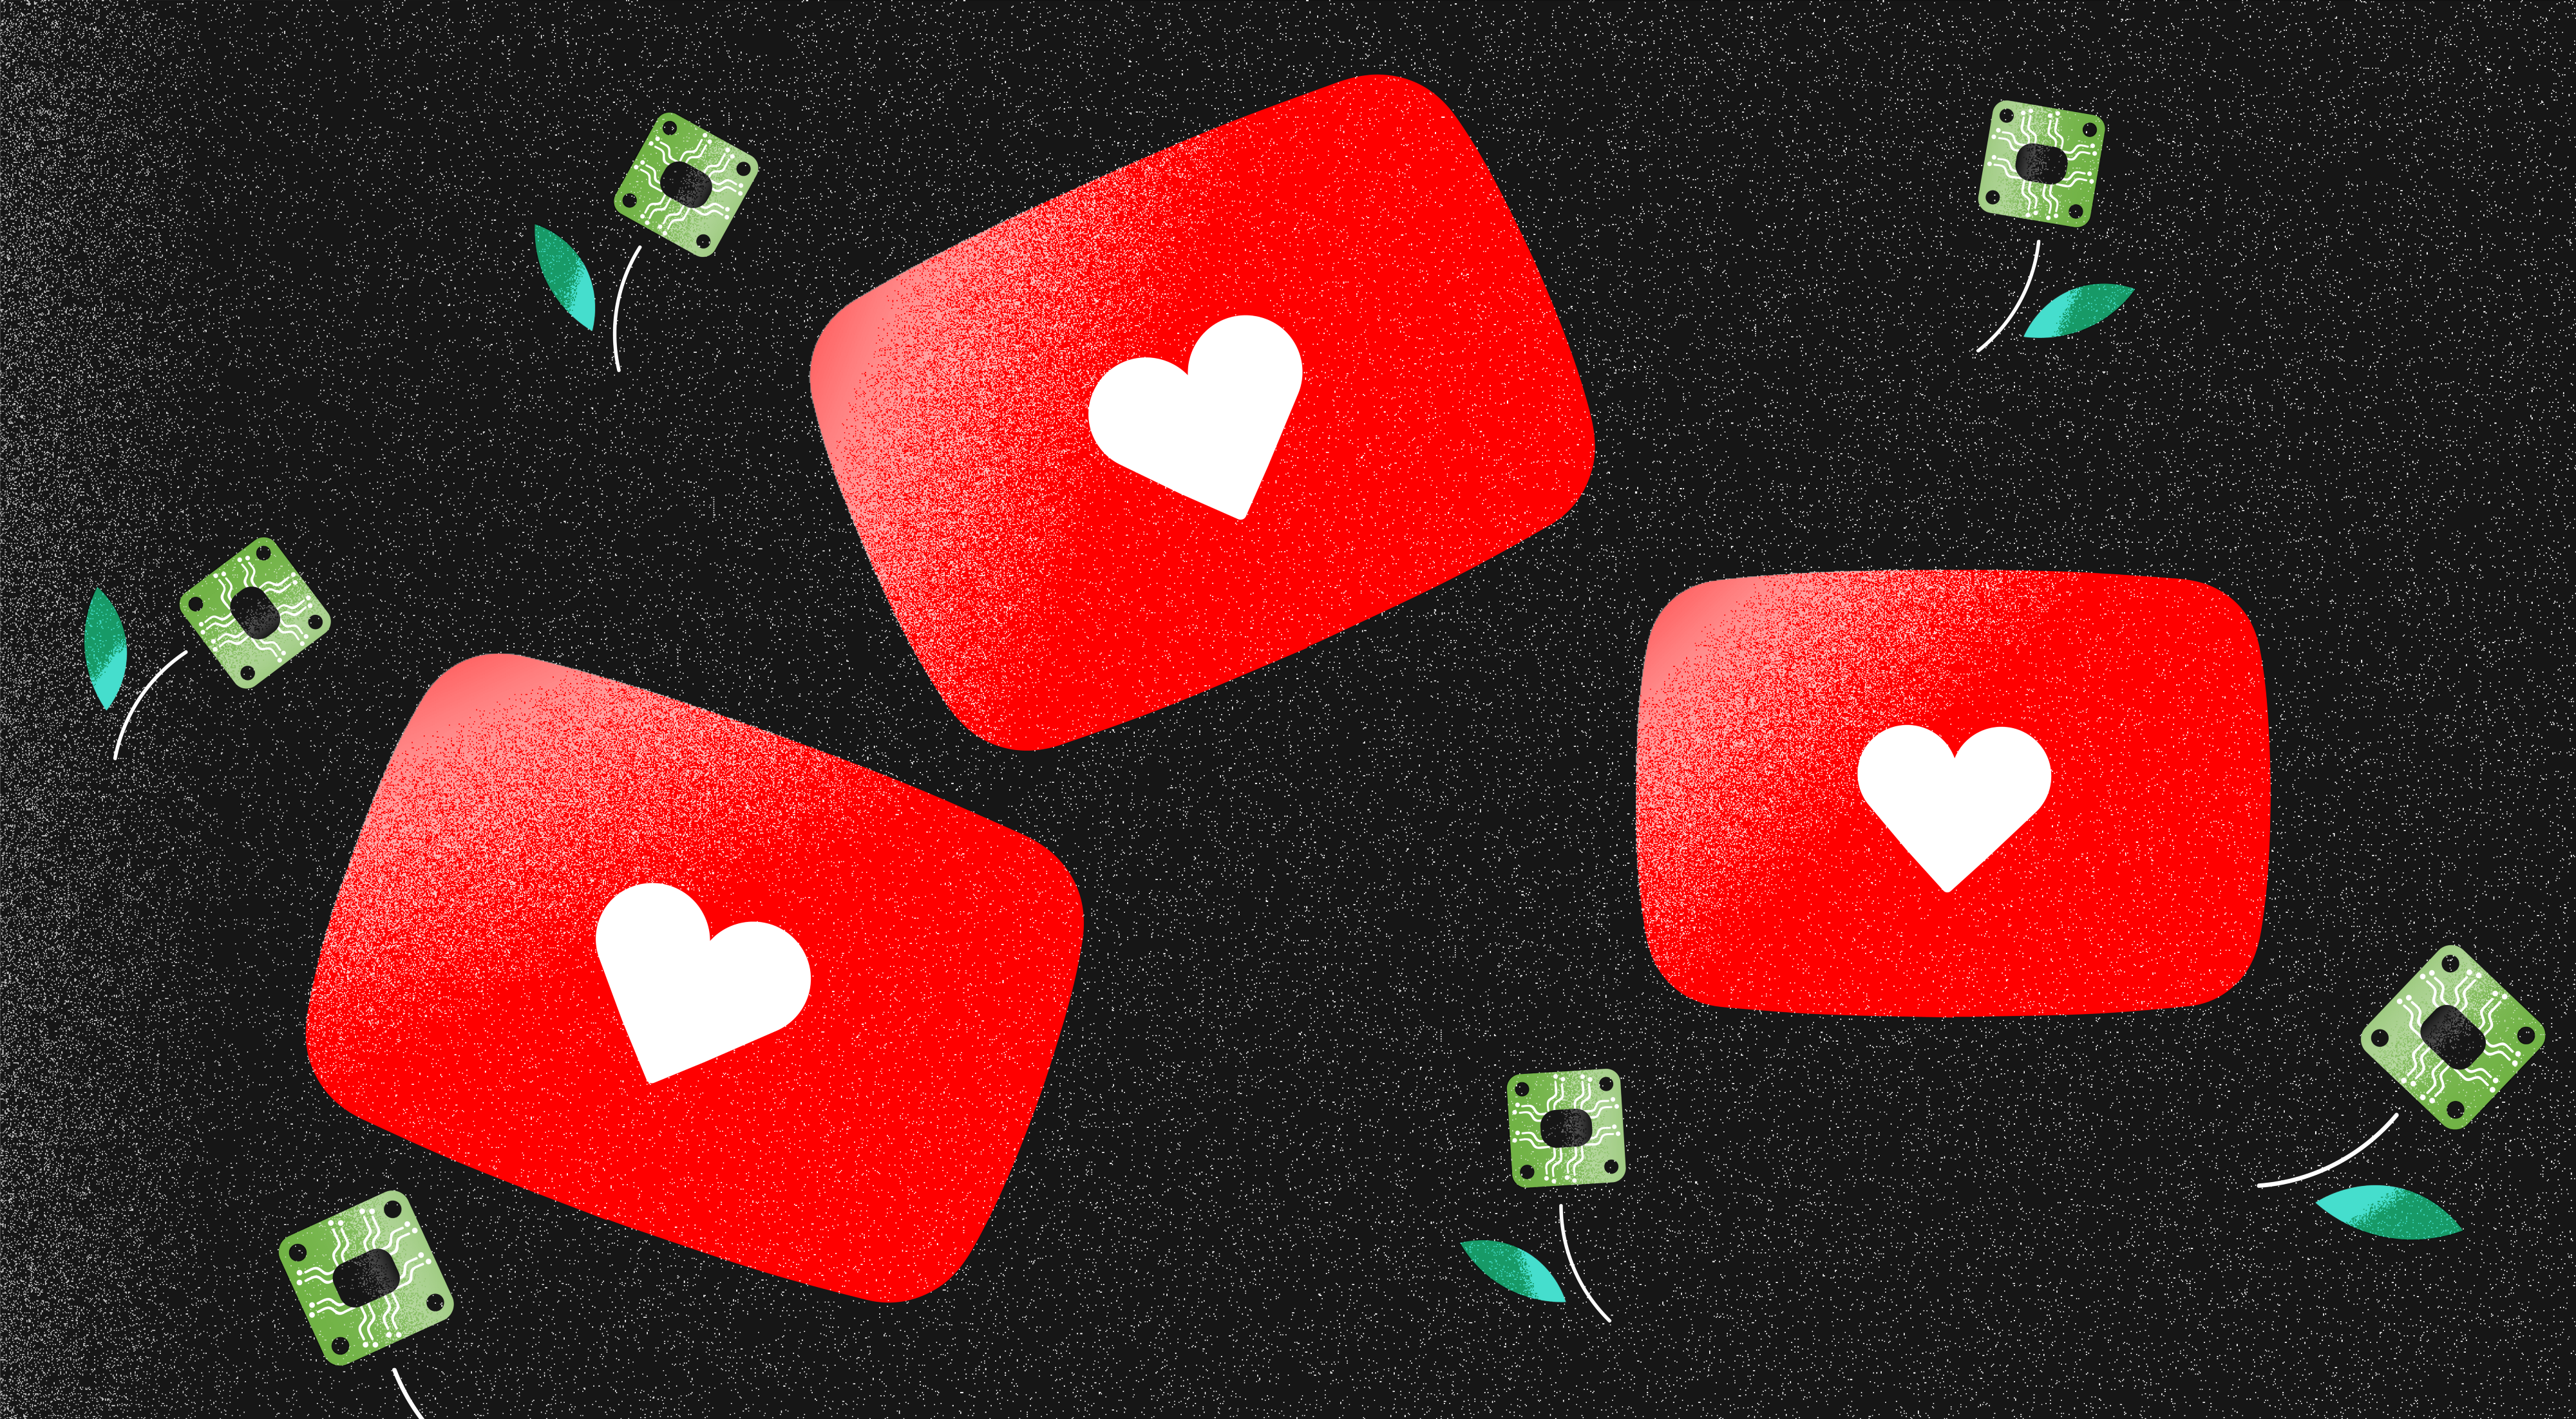 Youtube Logos with hearts in them and platines as flowers